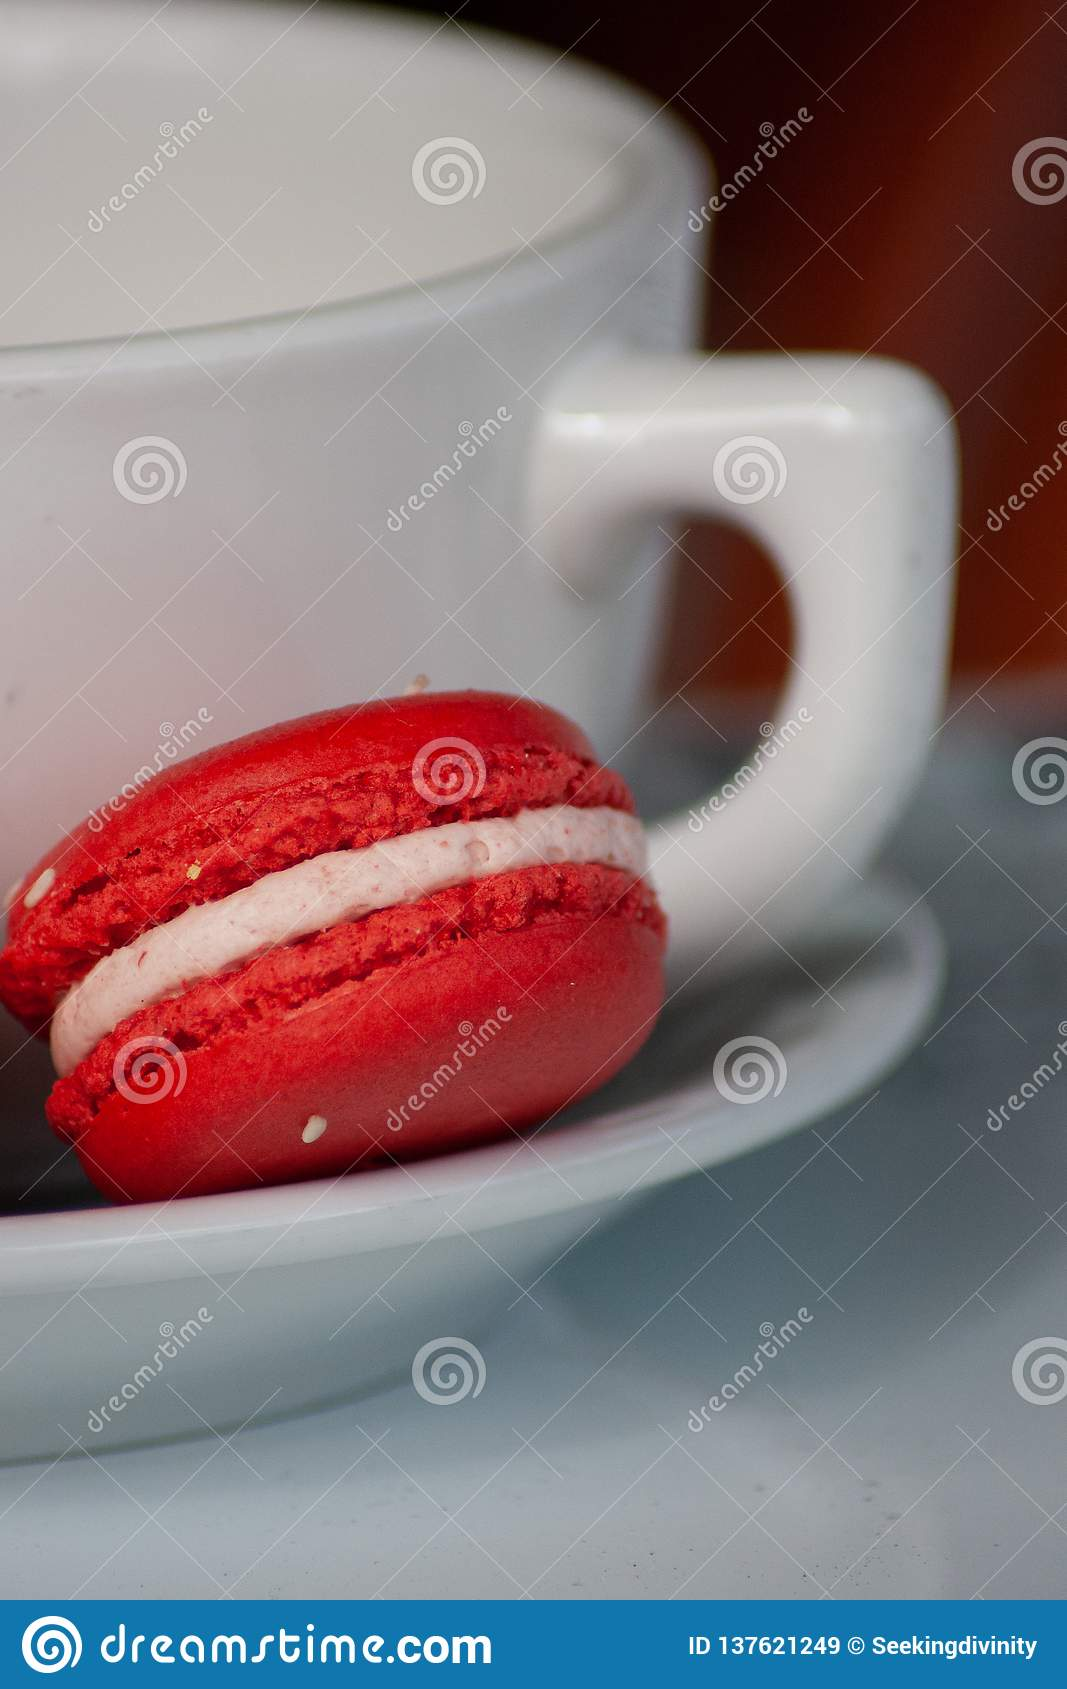 Red Macaron Cookie with White Coffee Mug